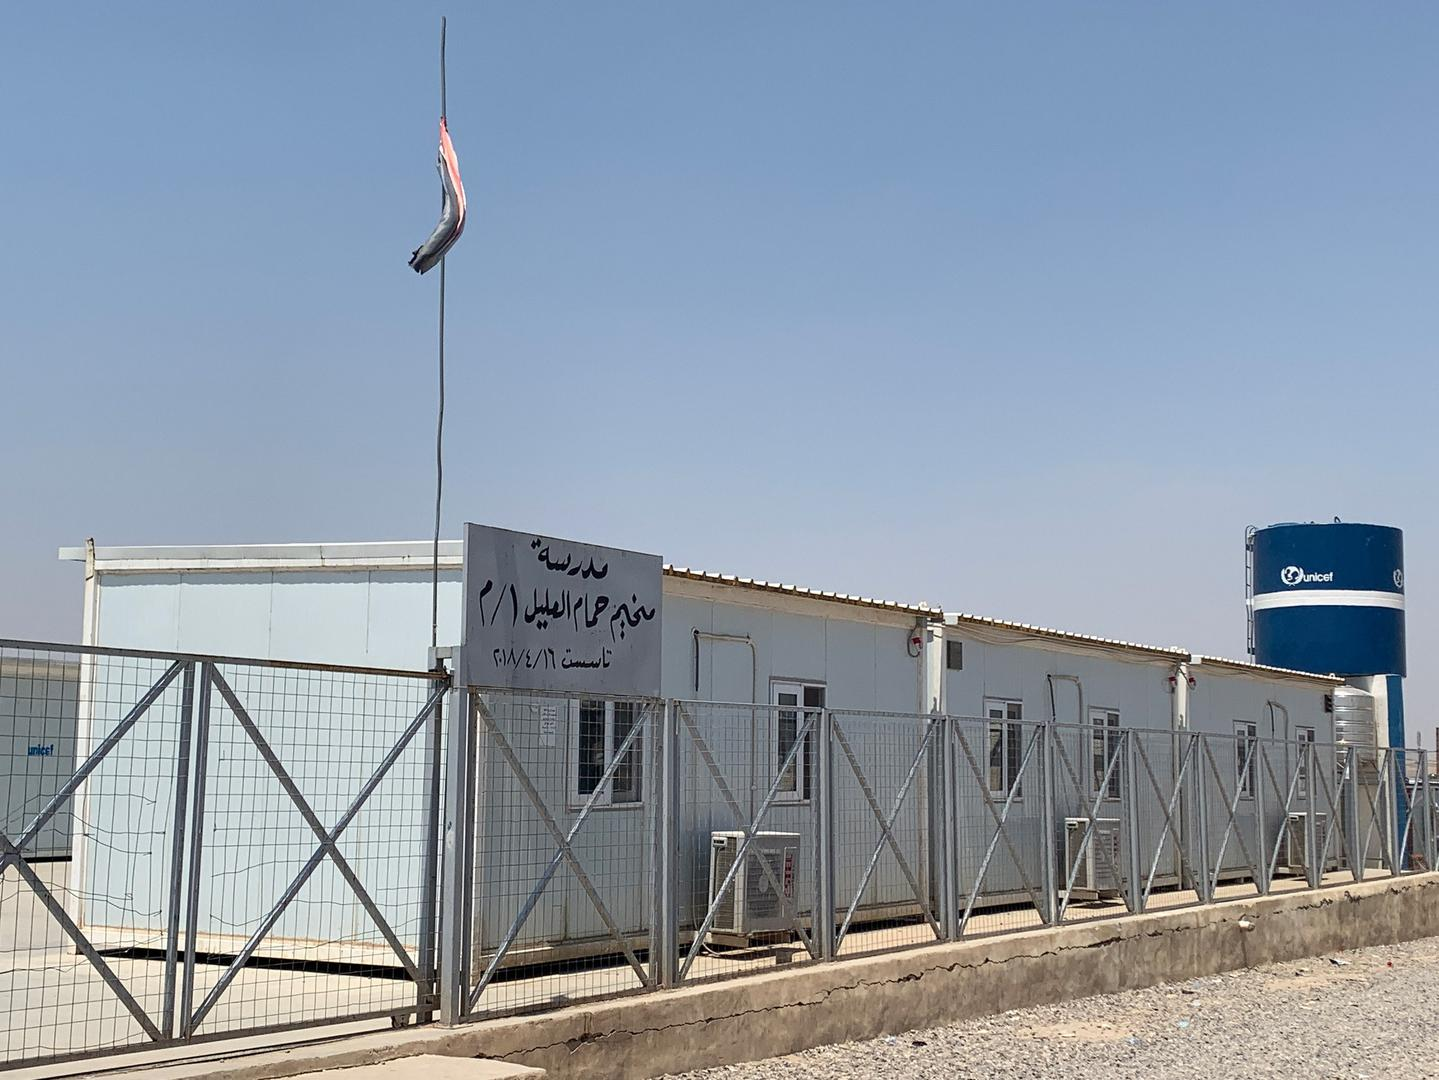 The school at Hammam al-Alil 1 camp for displaced people south of Mosul that security forces occupied on July 6, 7 and 9 in order to conduct security screenings of camp residents. © 2019 Belkis Wille/Human Rights Watch